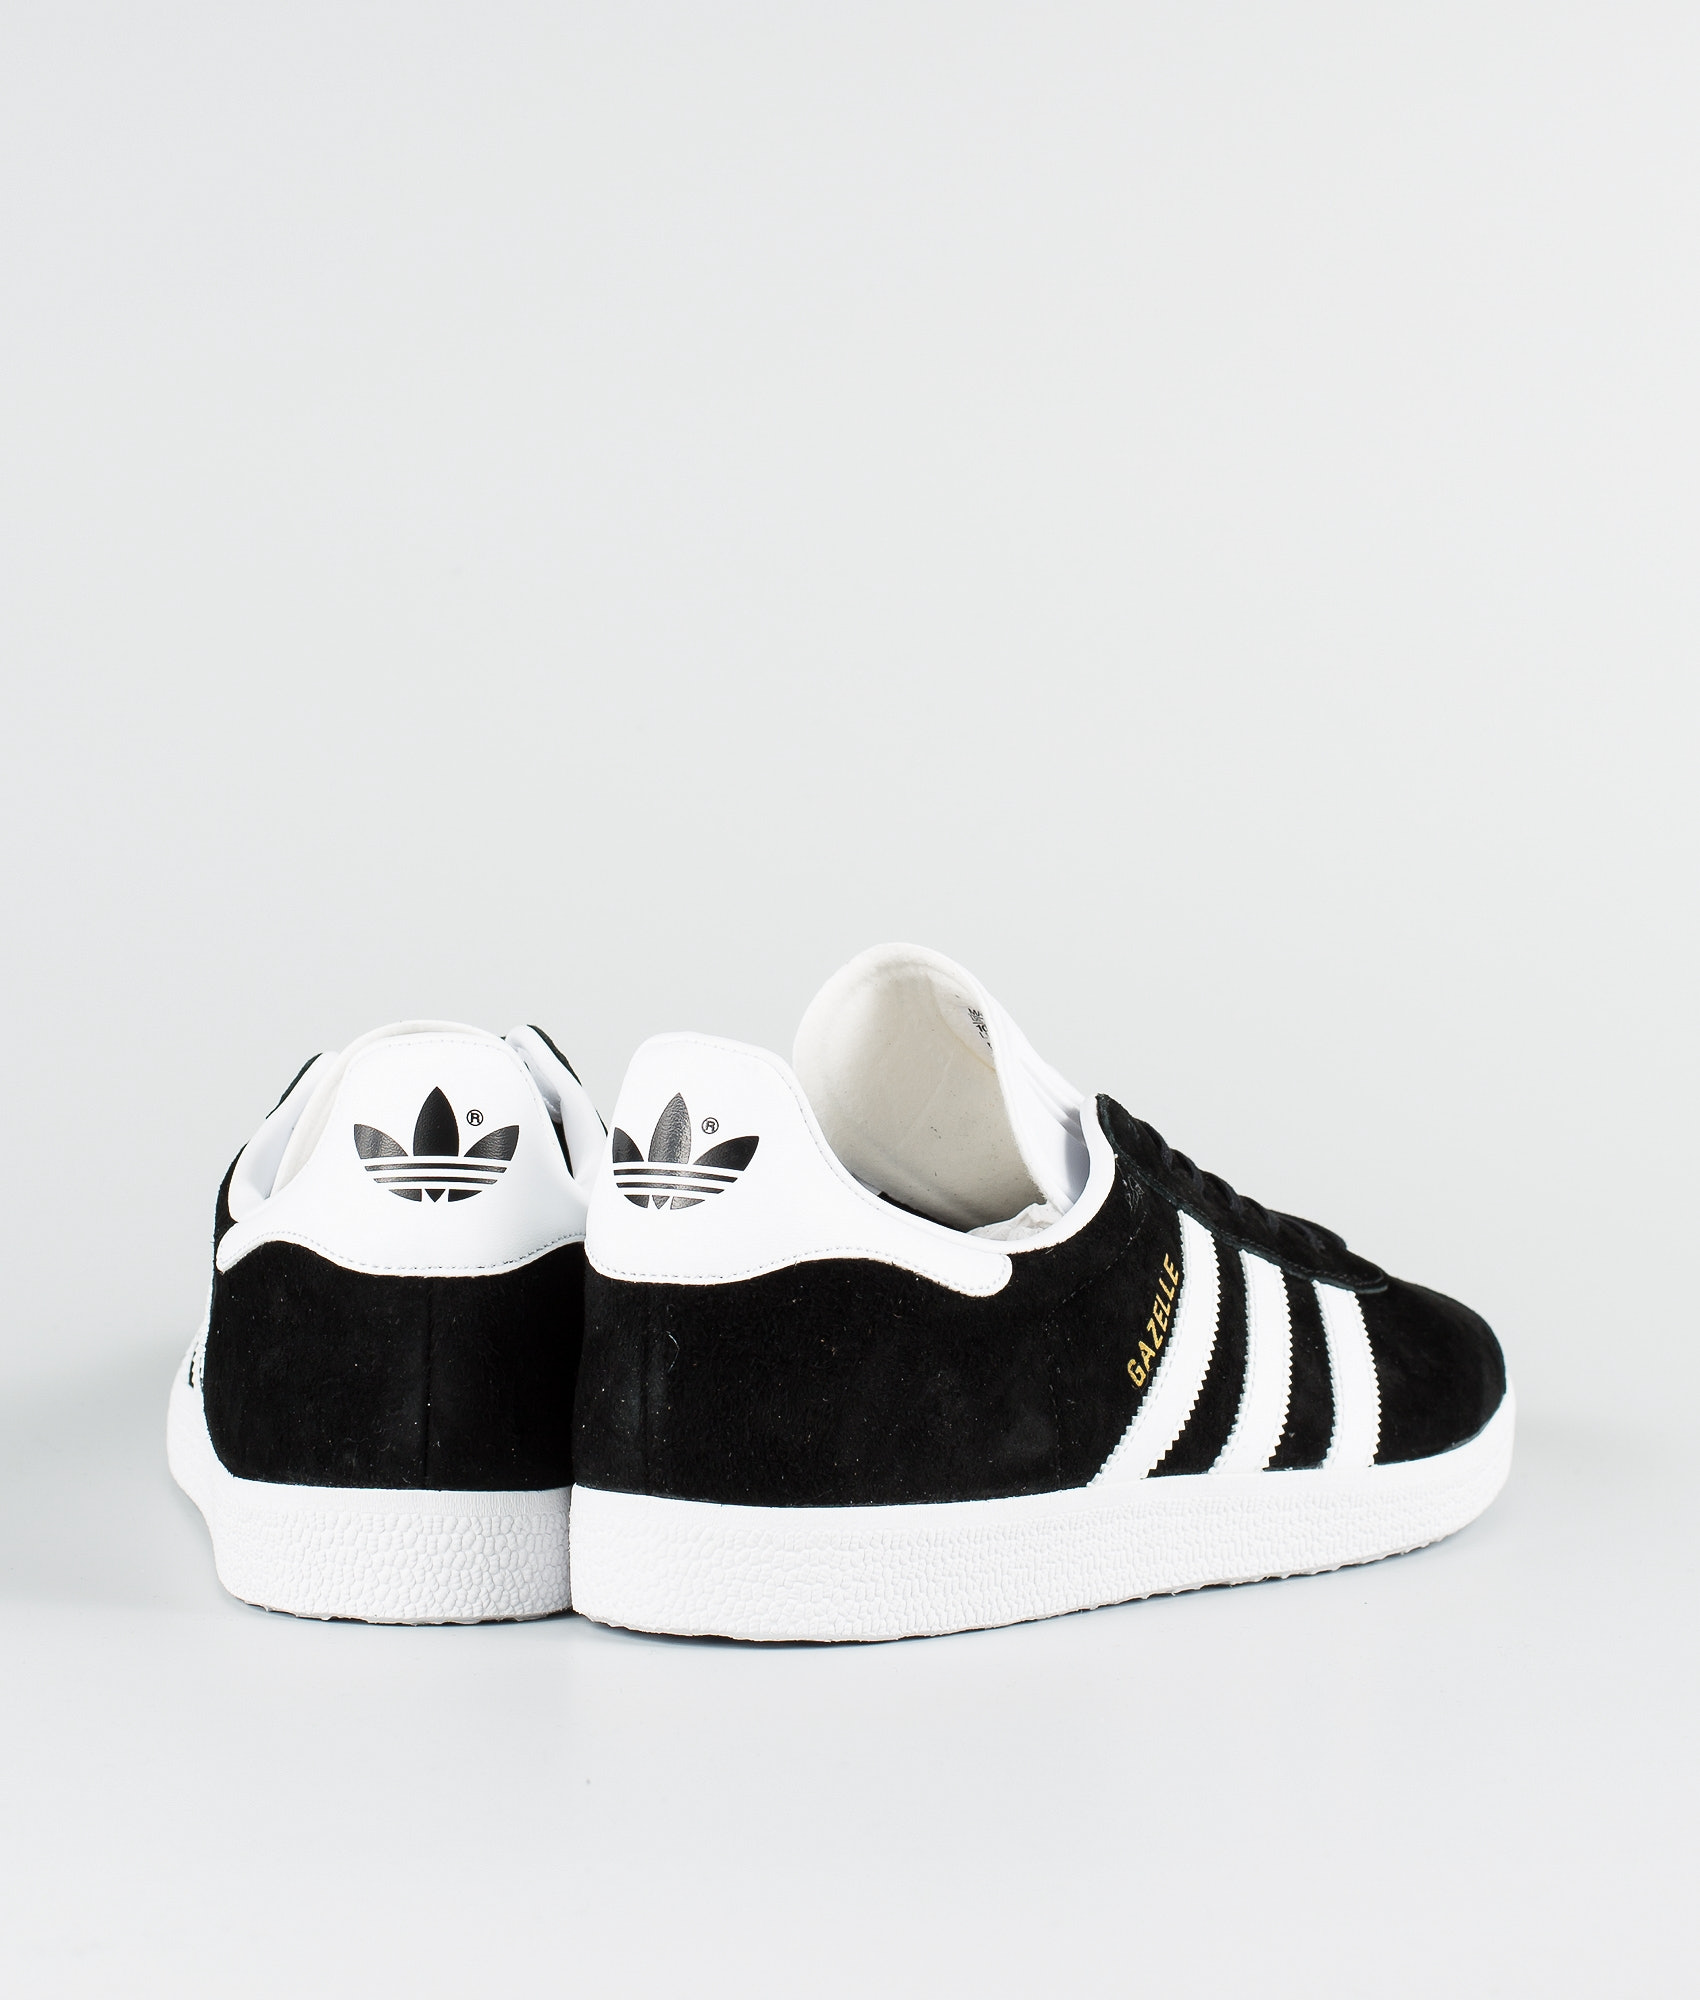 official photos 1787e 8359e Adidas Originals Gazelle Shoes